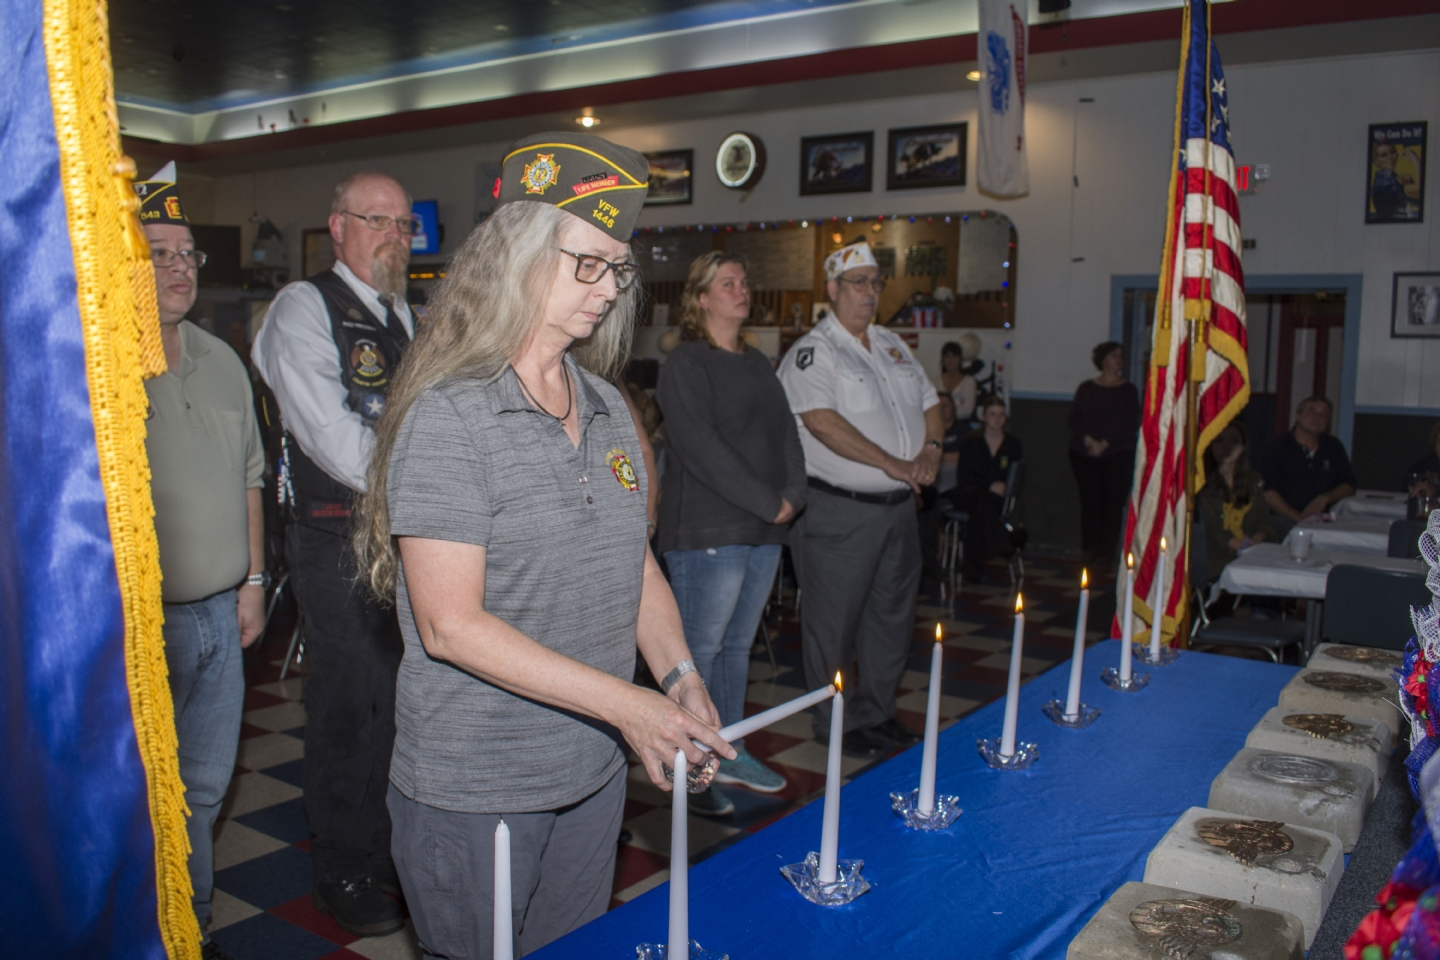 Lighting a Candle for Vets